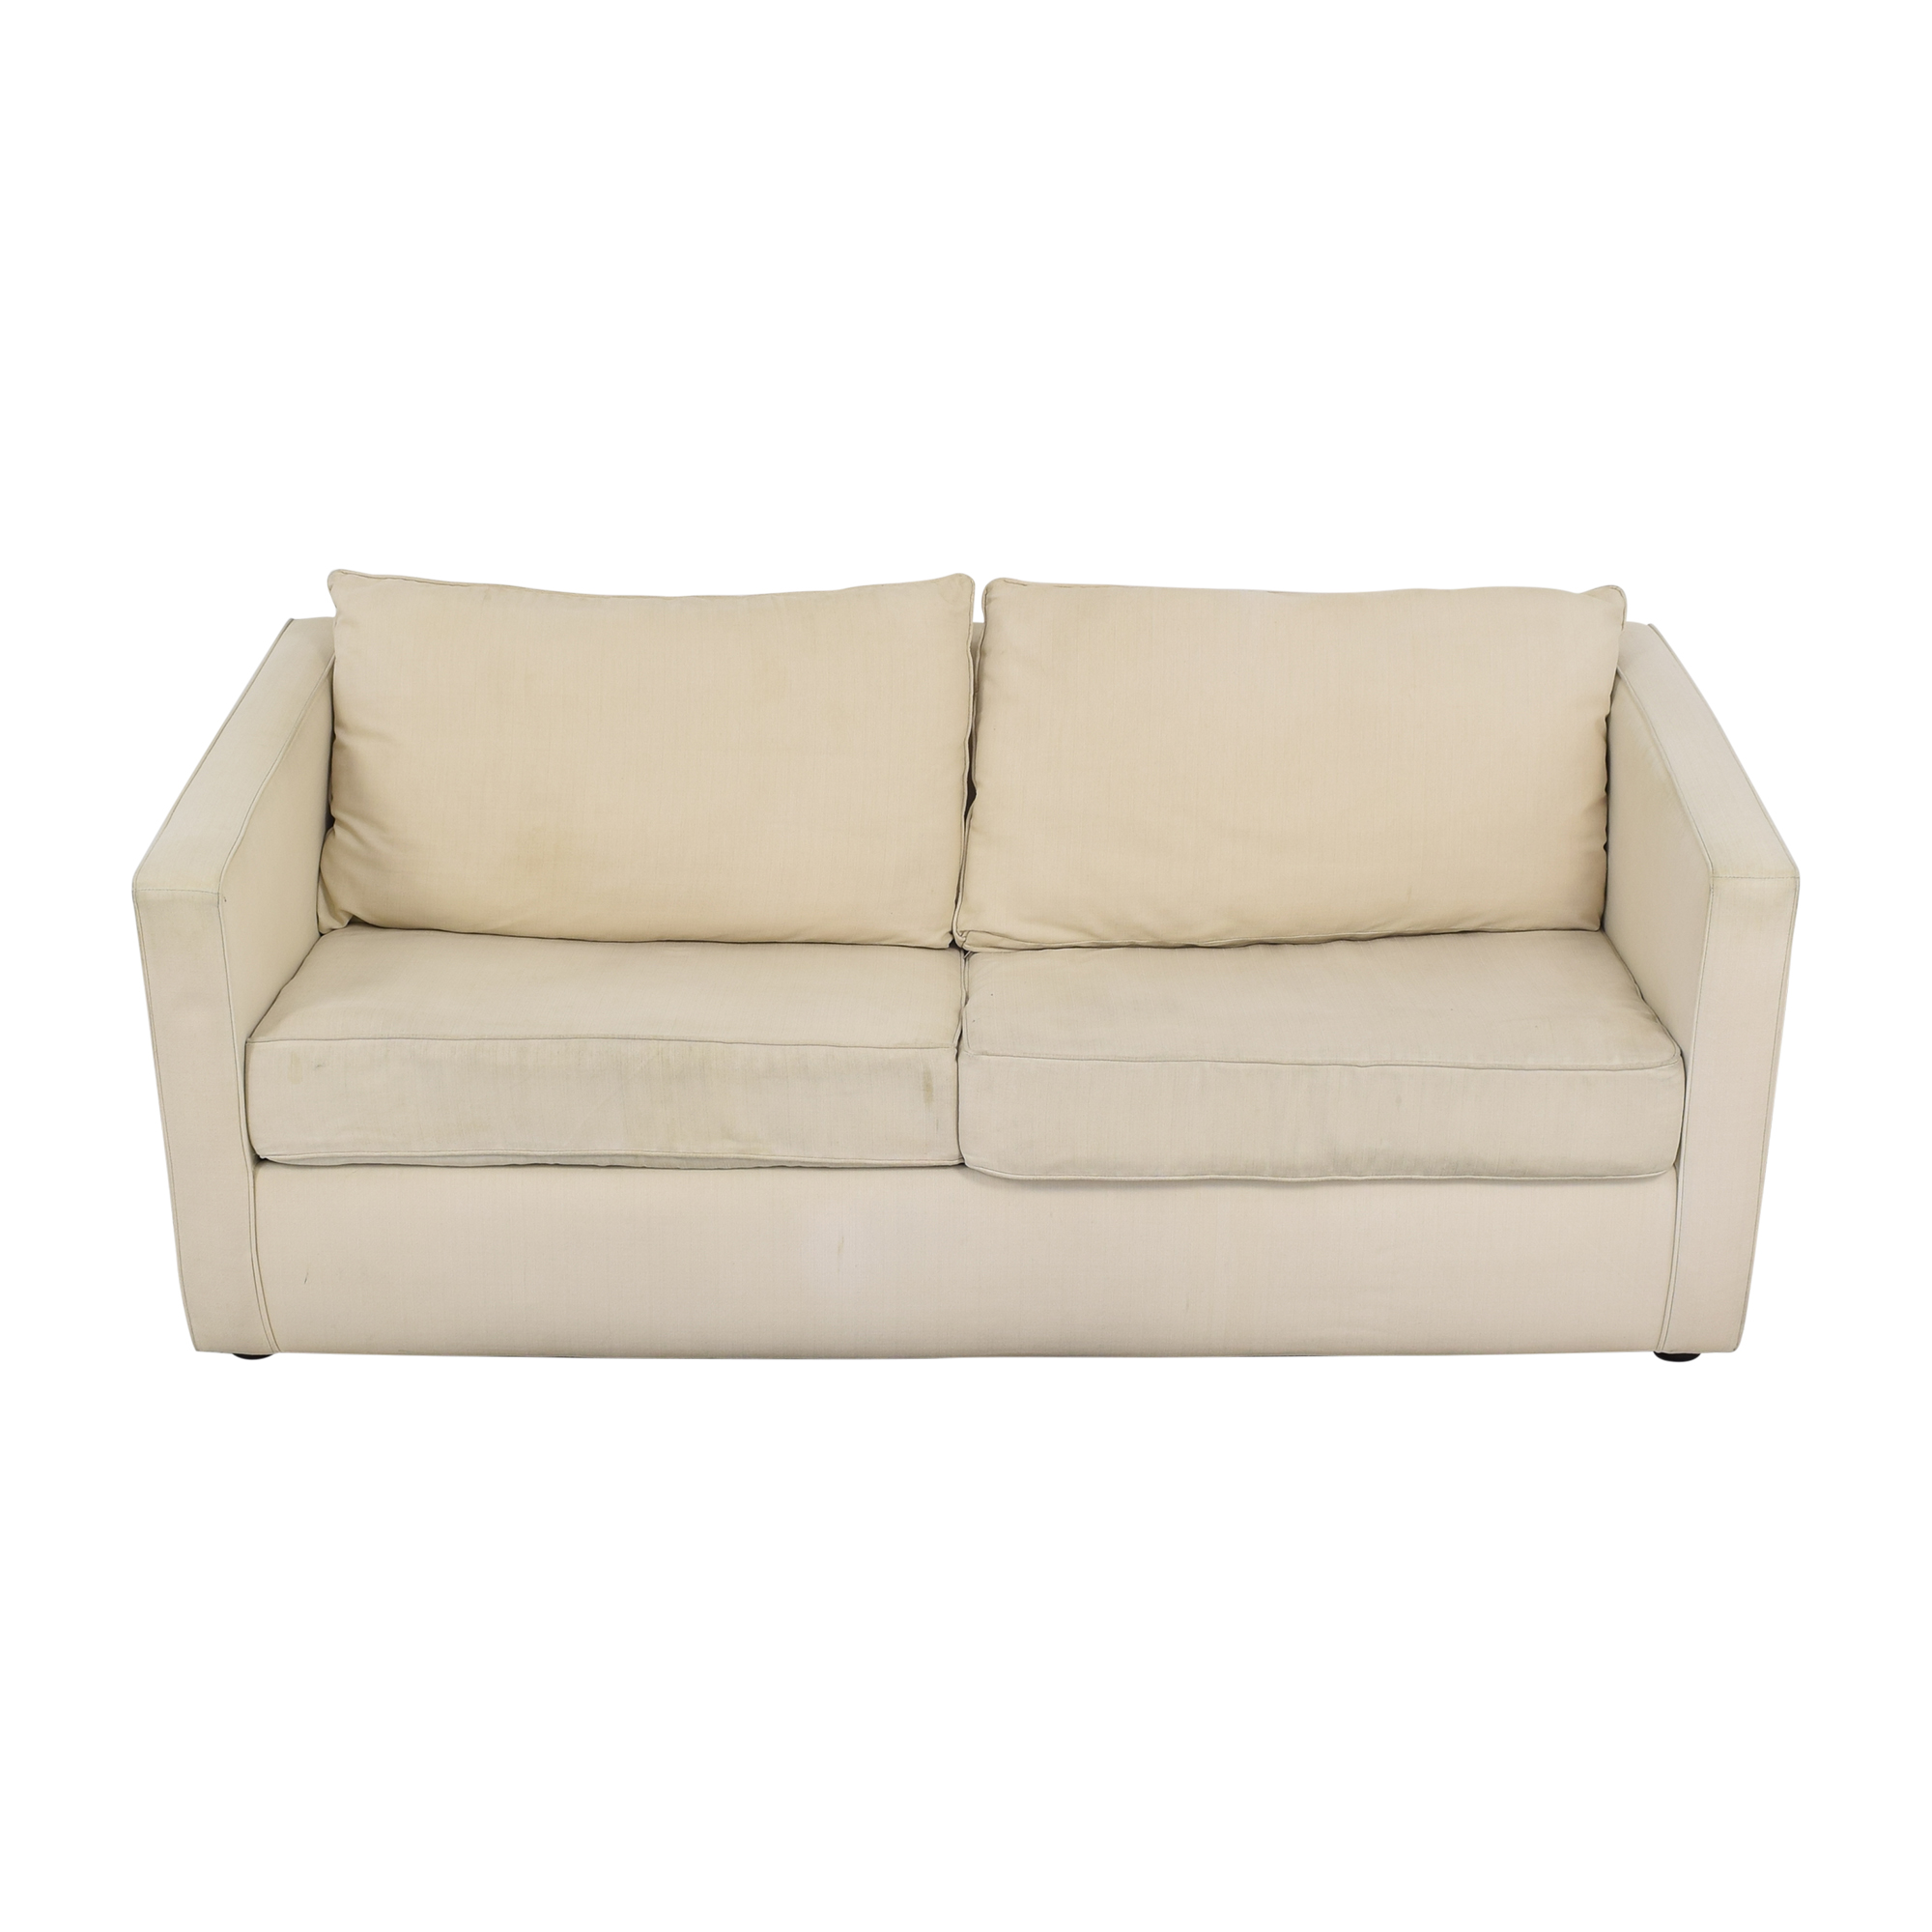 KFI Single Cushion Sofa Bed for sale